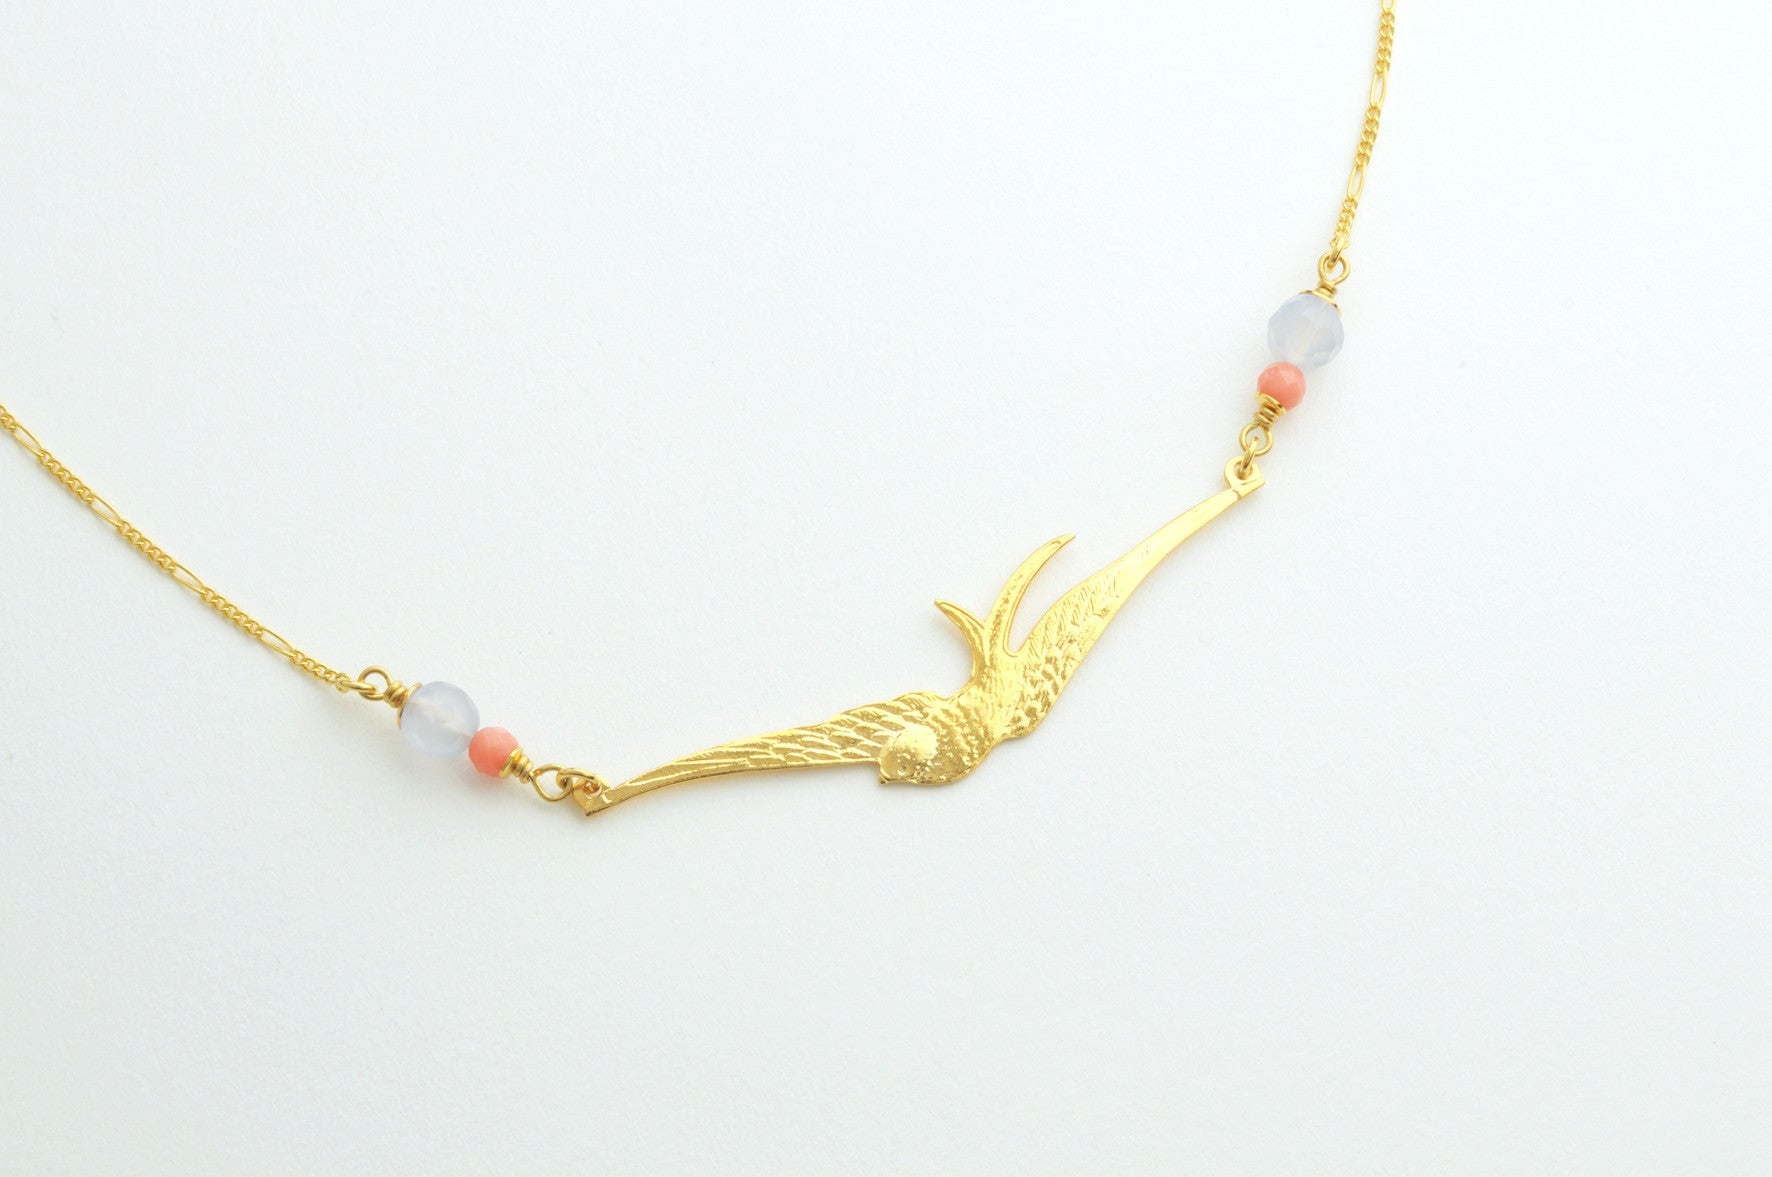 ....Kette LARGE SWALLOW vergoldet..Necklace LARGE SWALLOW gold plated....